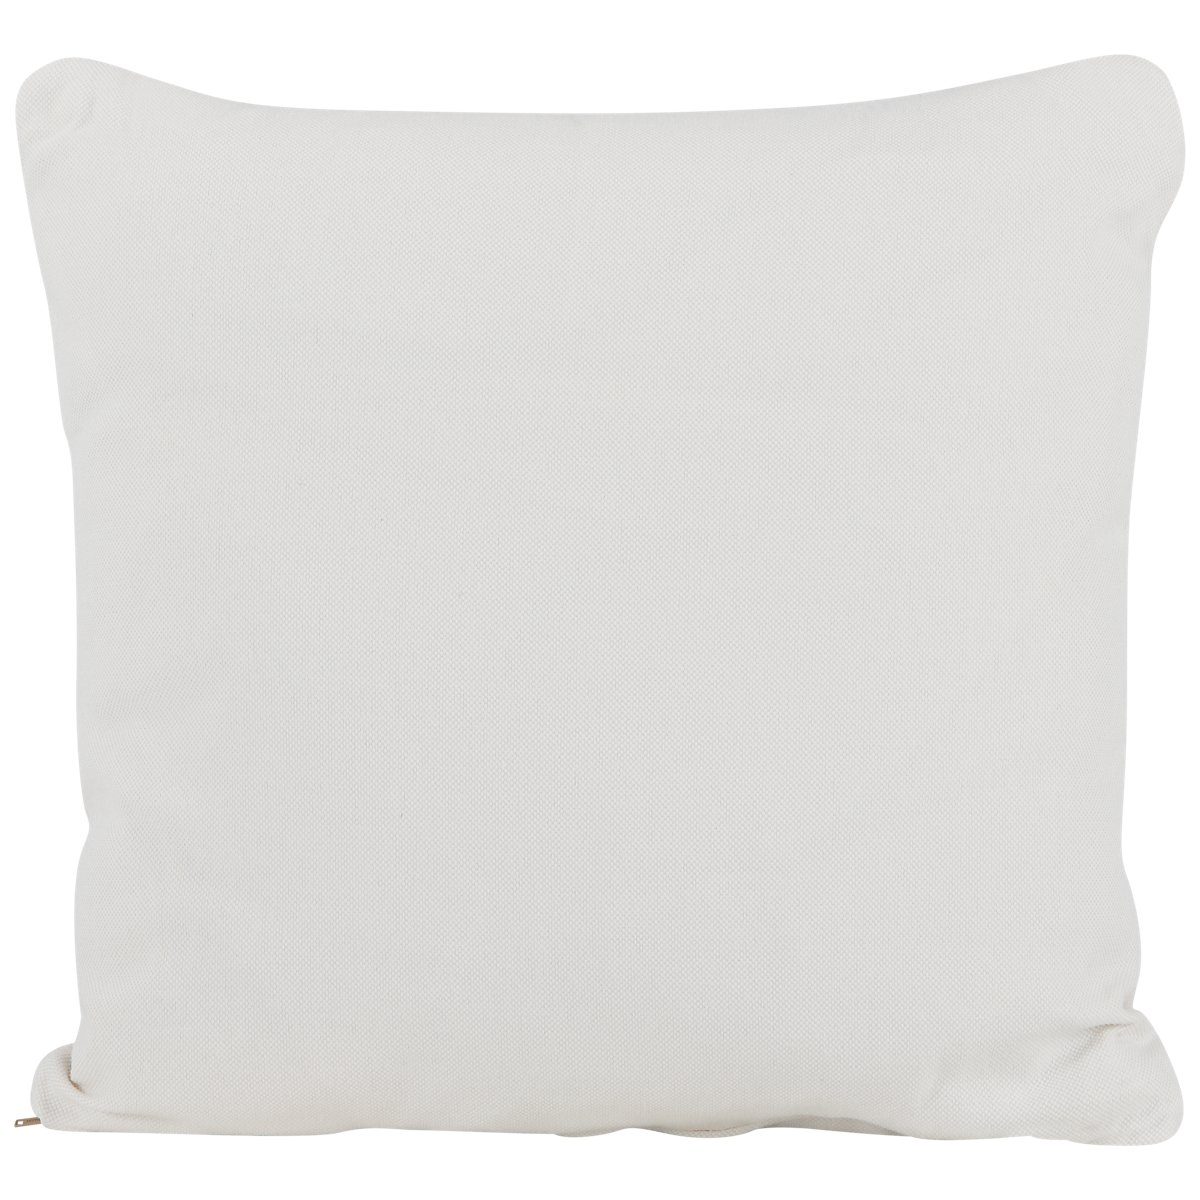 City Furniture: Turner White Fabric Square Accent Pillow